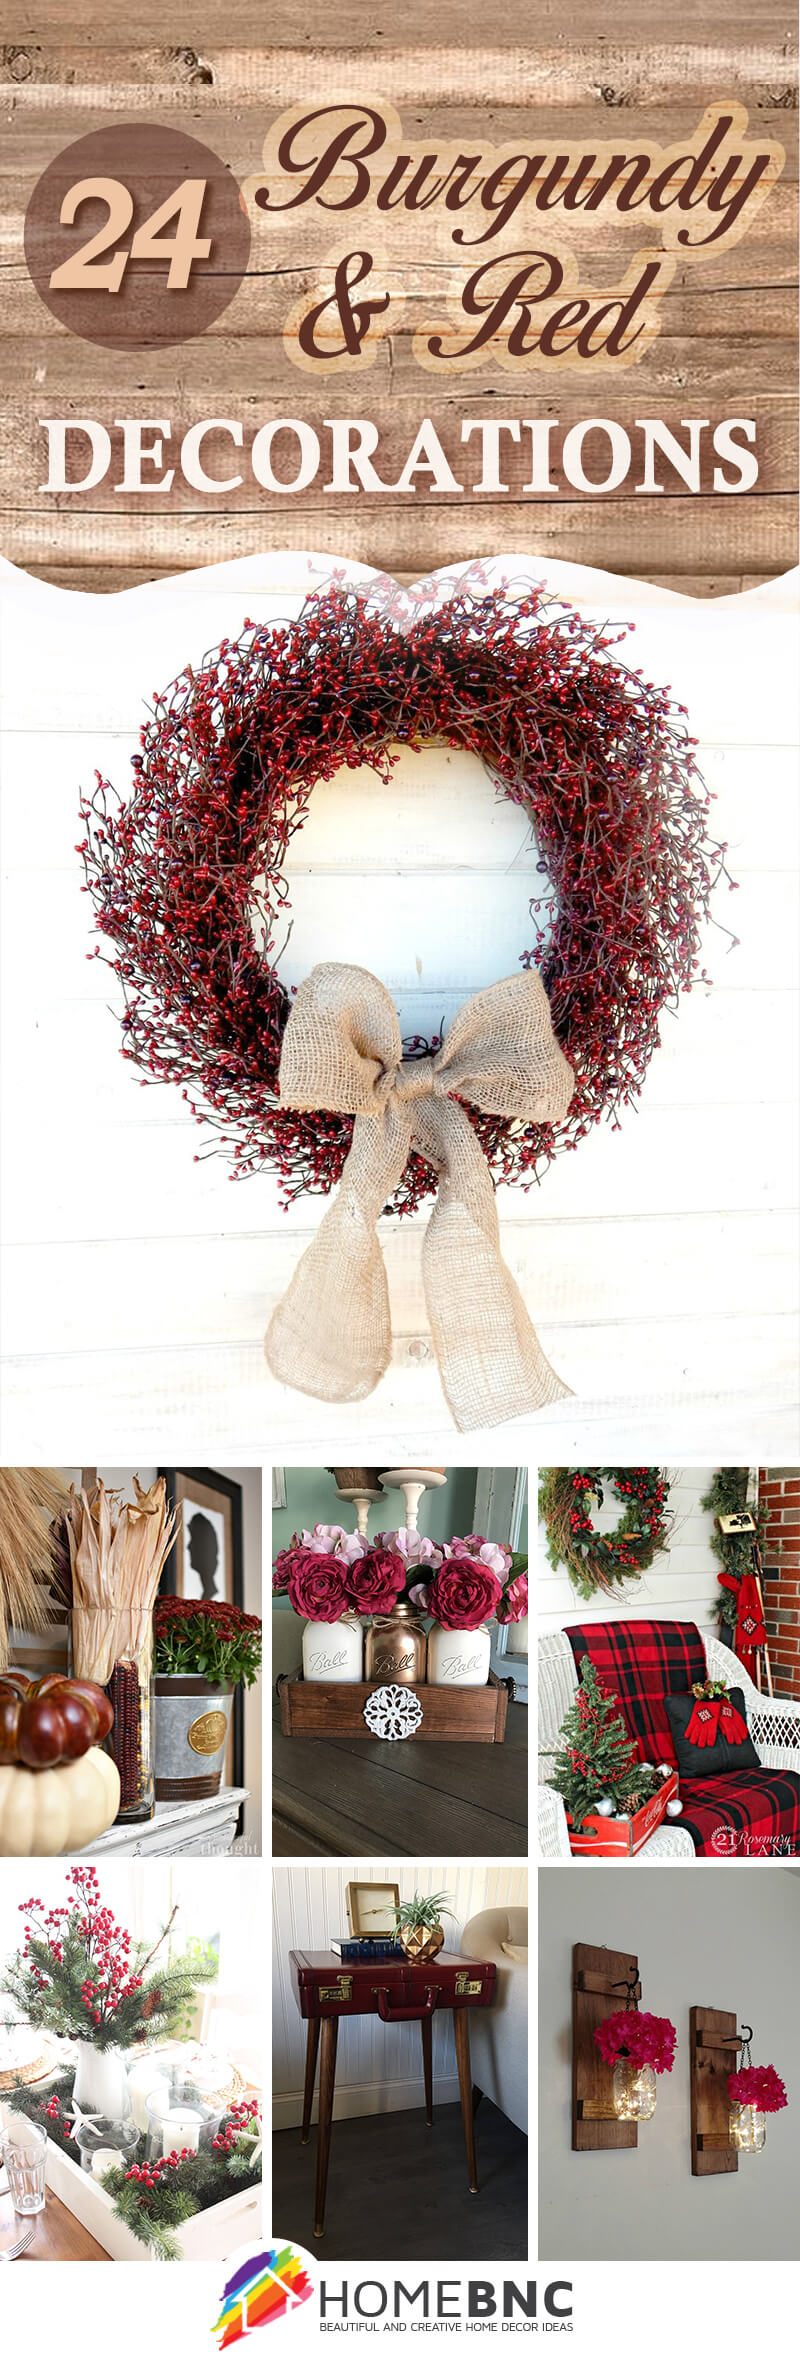 Burgundy and Red Decoration Ideas